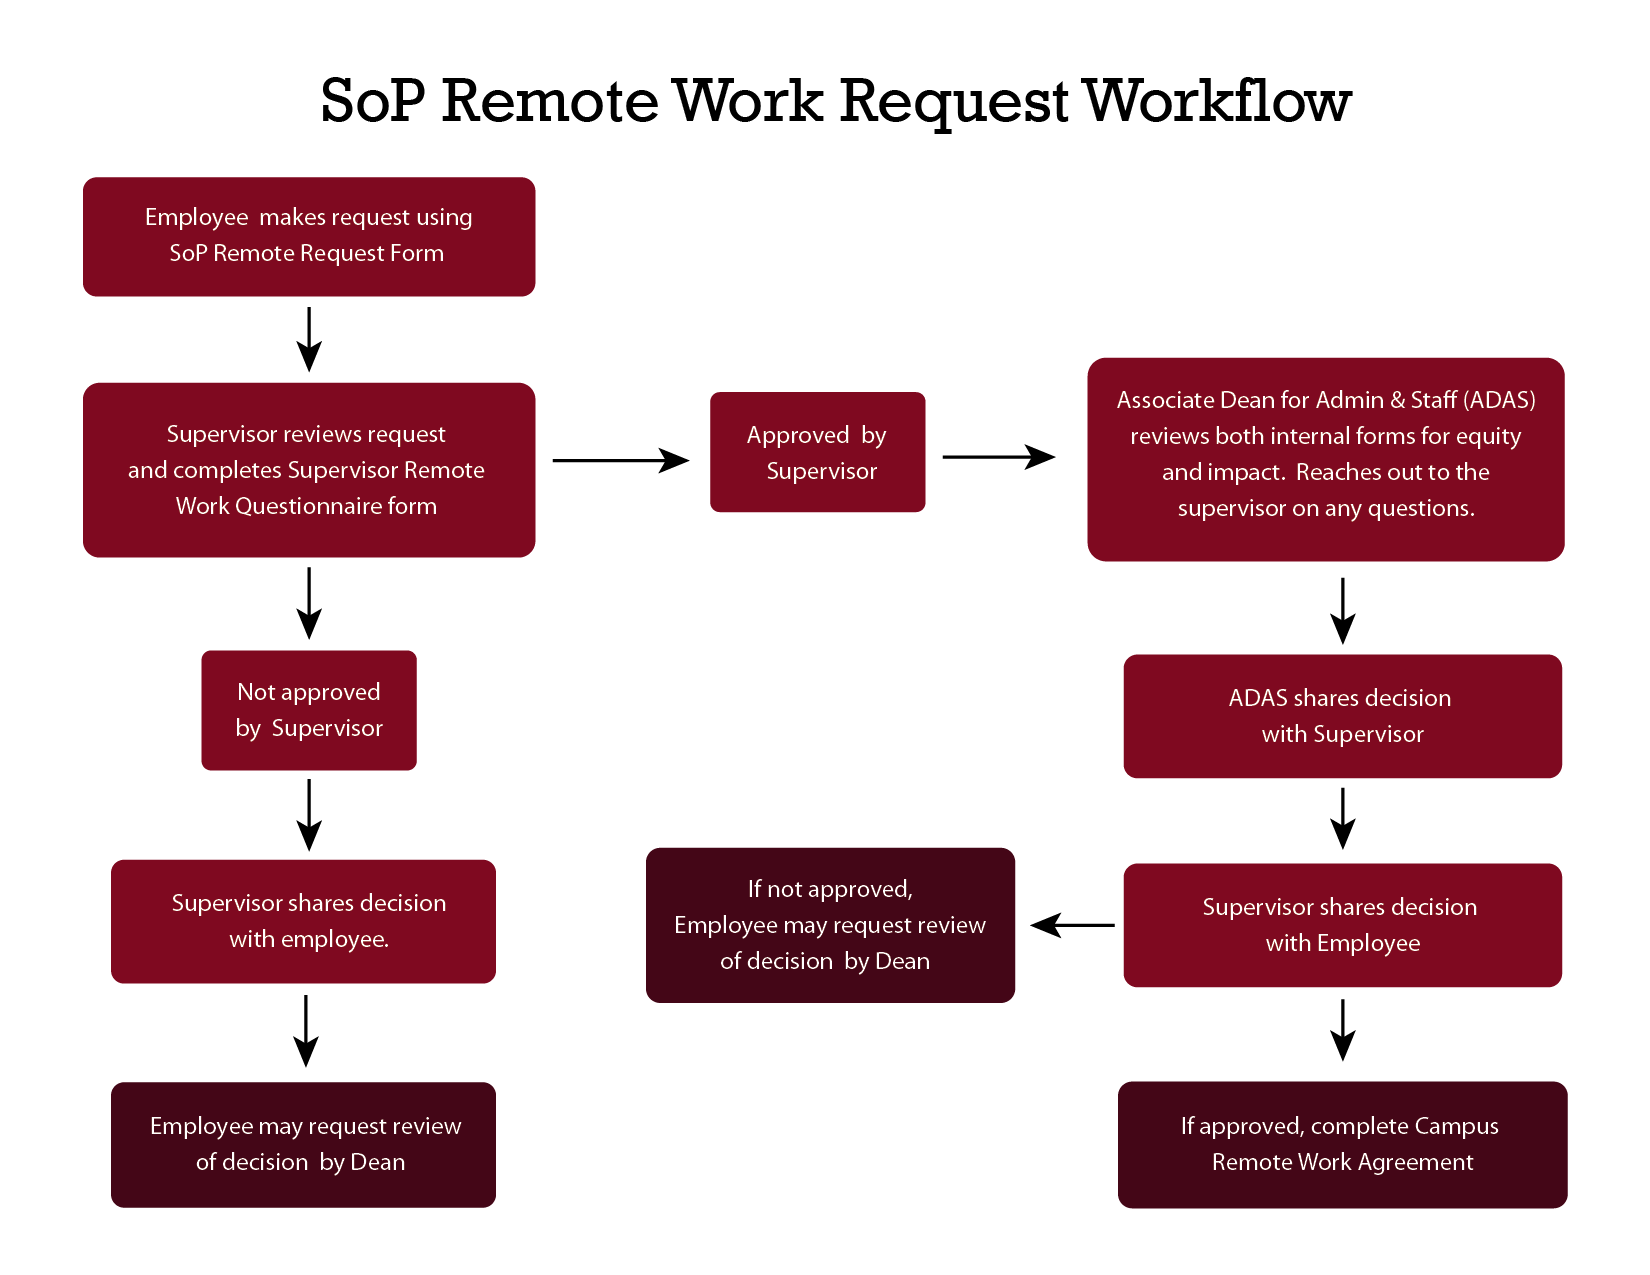 Flow chart showing the steps in the approval and appeal process for Remote Work